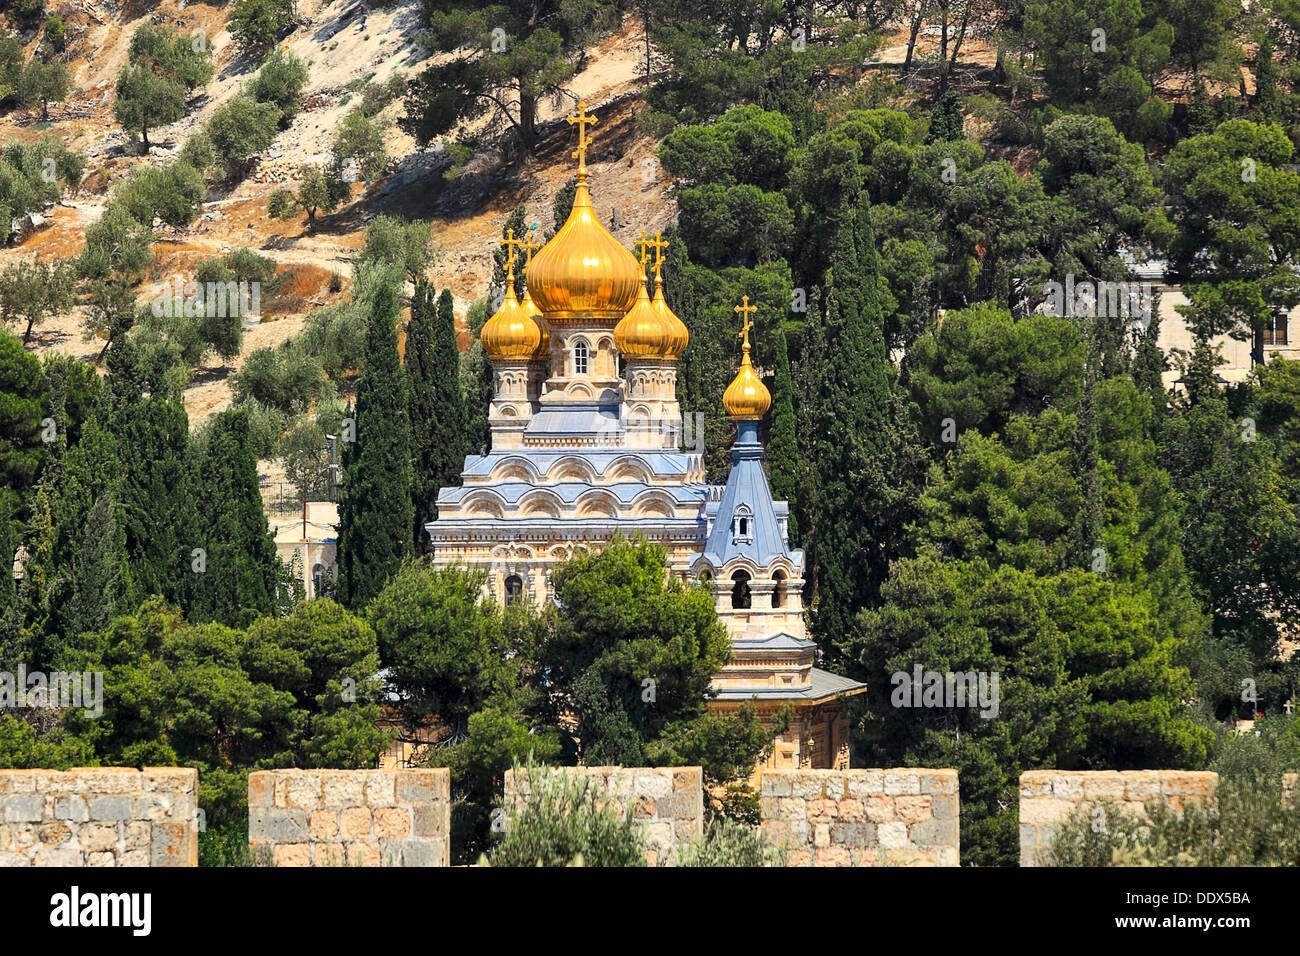 Church of Mary Magdalene located on Mount of Olives in Jerusalem, Israel. - Stock Image